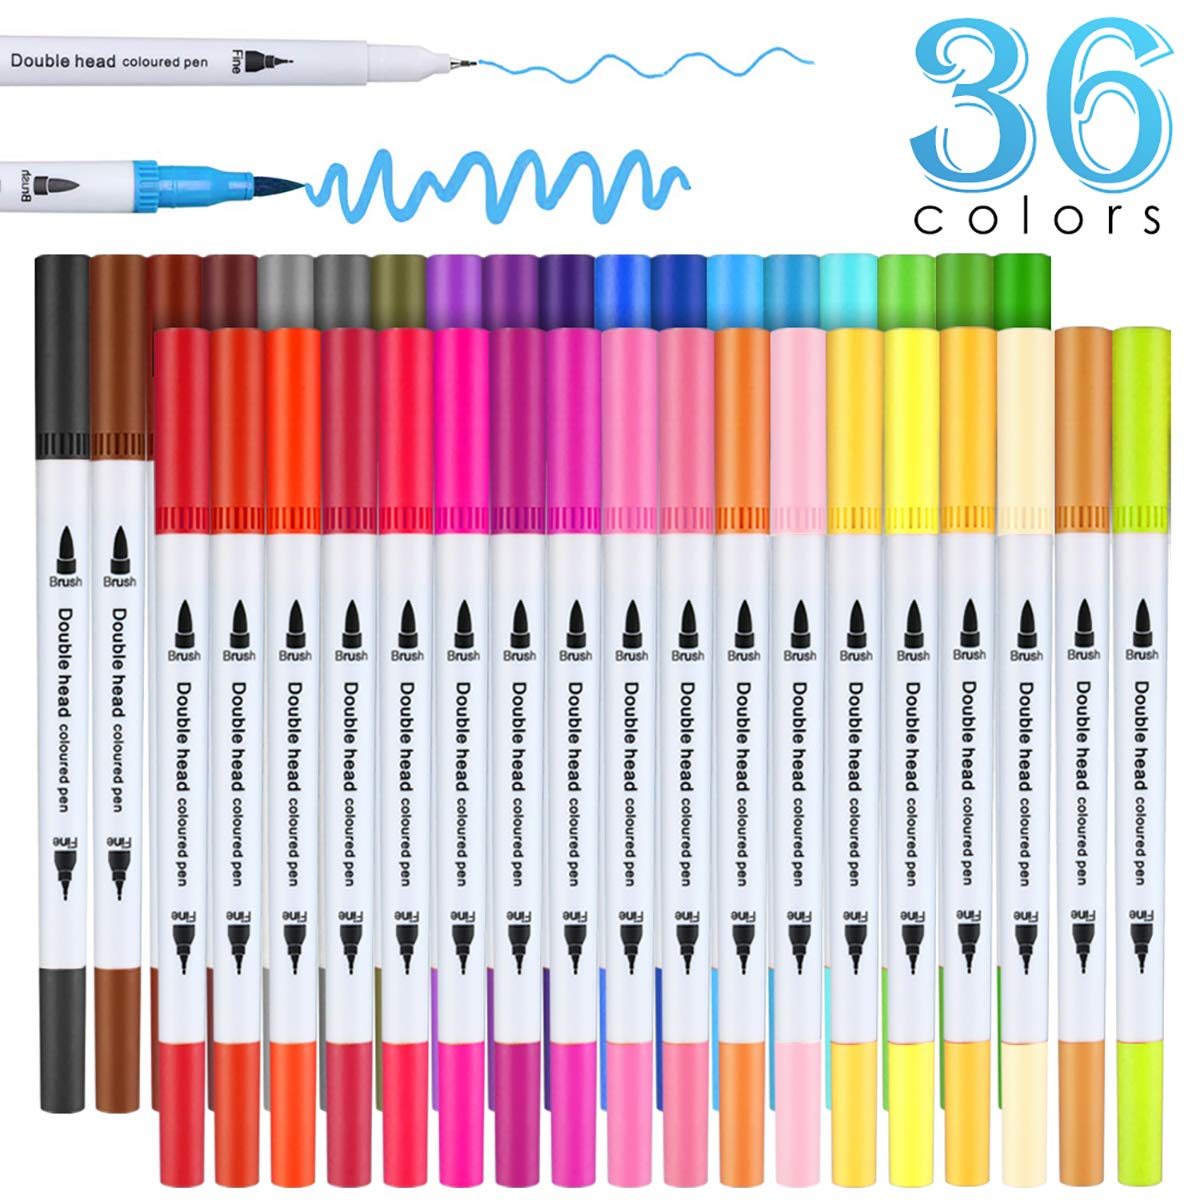 36 Colour Felt Tip Pens Watercolour Marker Pens, BOIROS Double Art Colouring Pens Fine Tip Brush Markers for Adult Students, DIY Card Making, Photo Album Coloring Books Craft Doodling